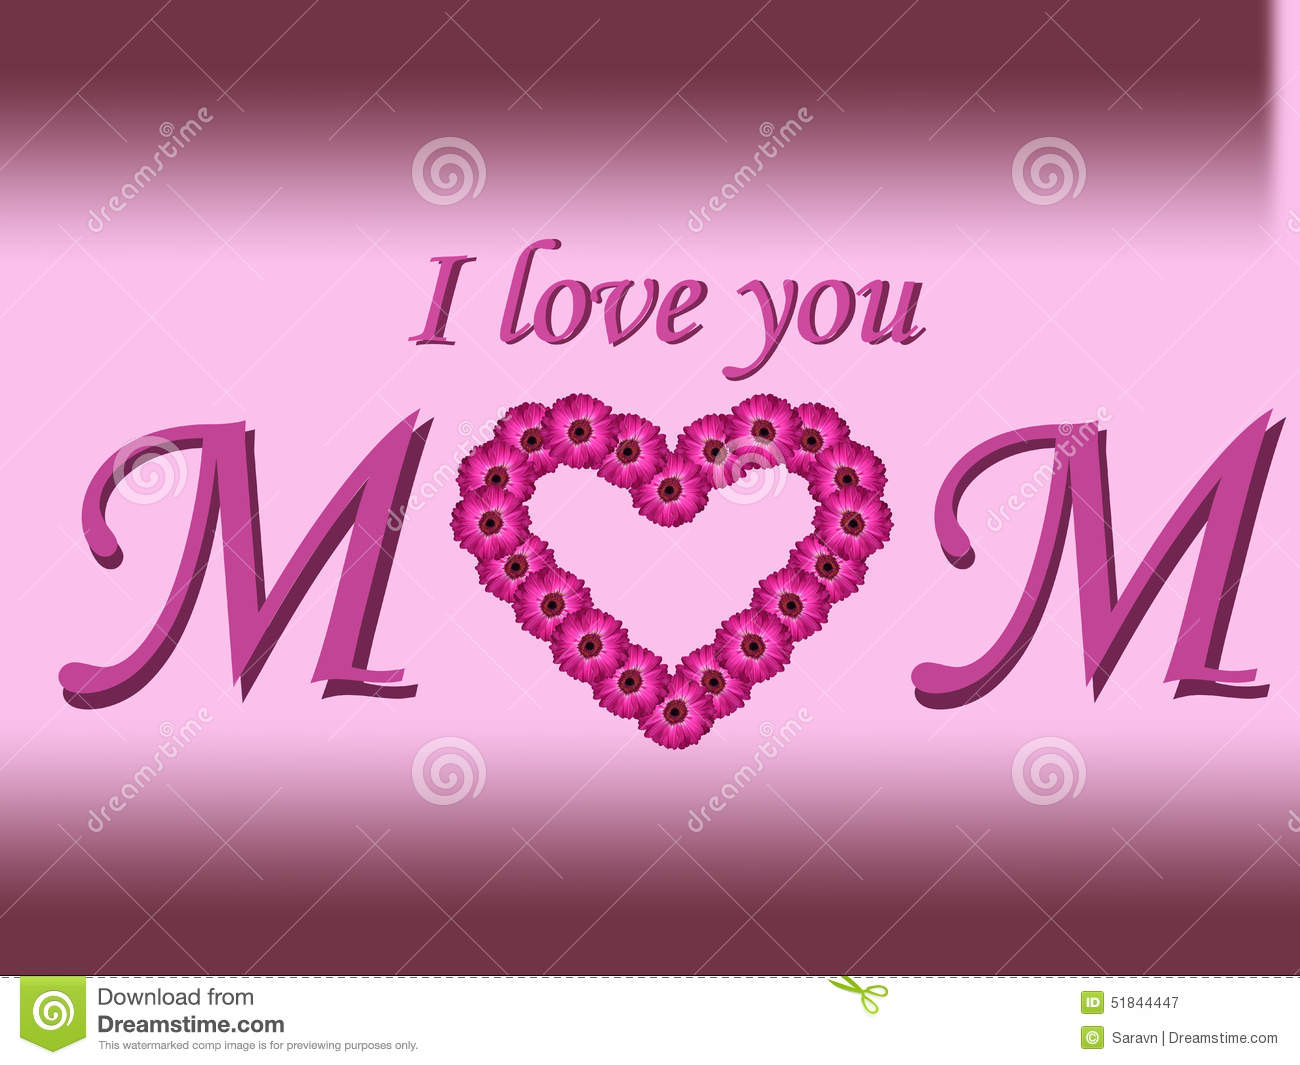 Wallpaper I Love You Mom : I Love You Mom Text Mother s Day card With Daisy Heart And Gradient Background Stock Image ...